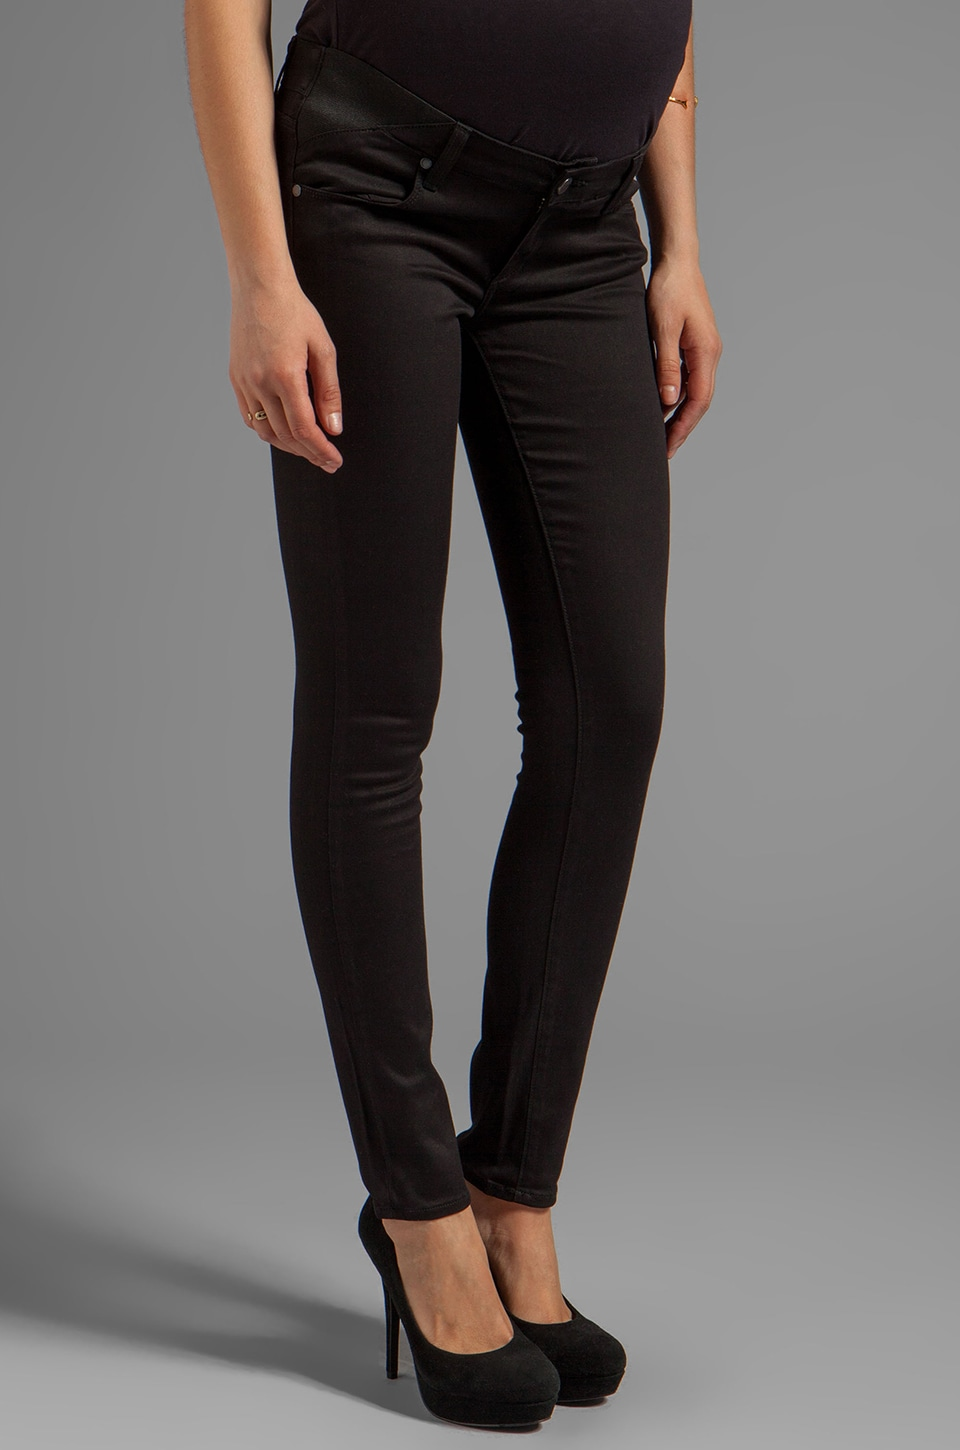 Paige Denim Maternity Verdugo Ultra Skinny in Black